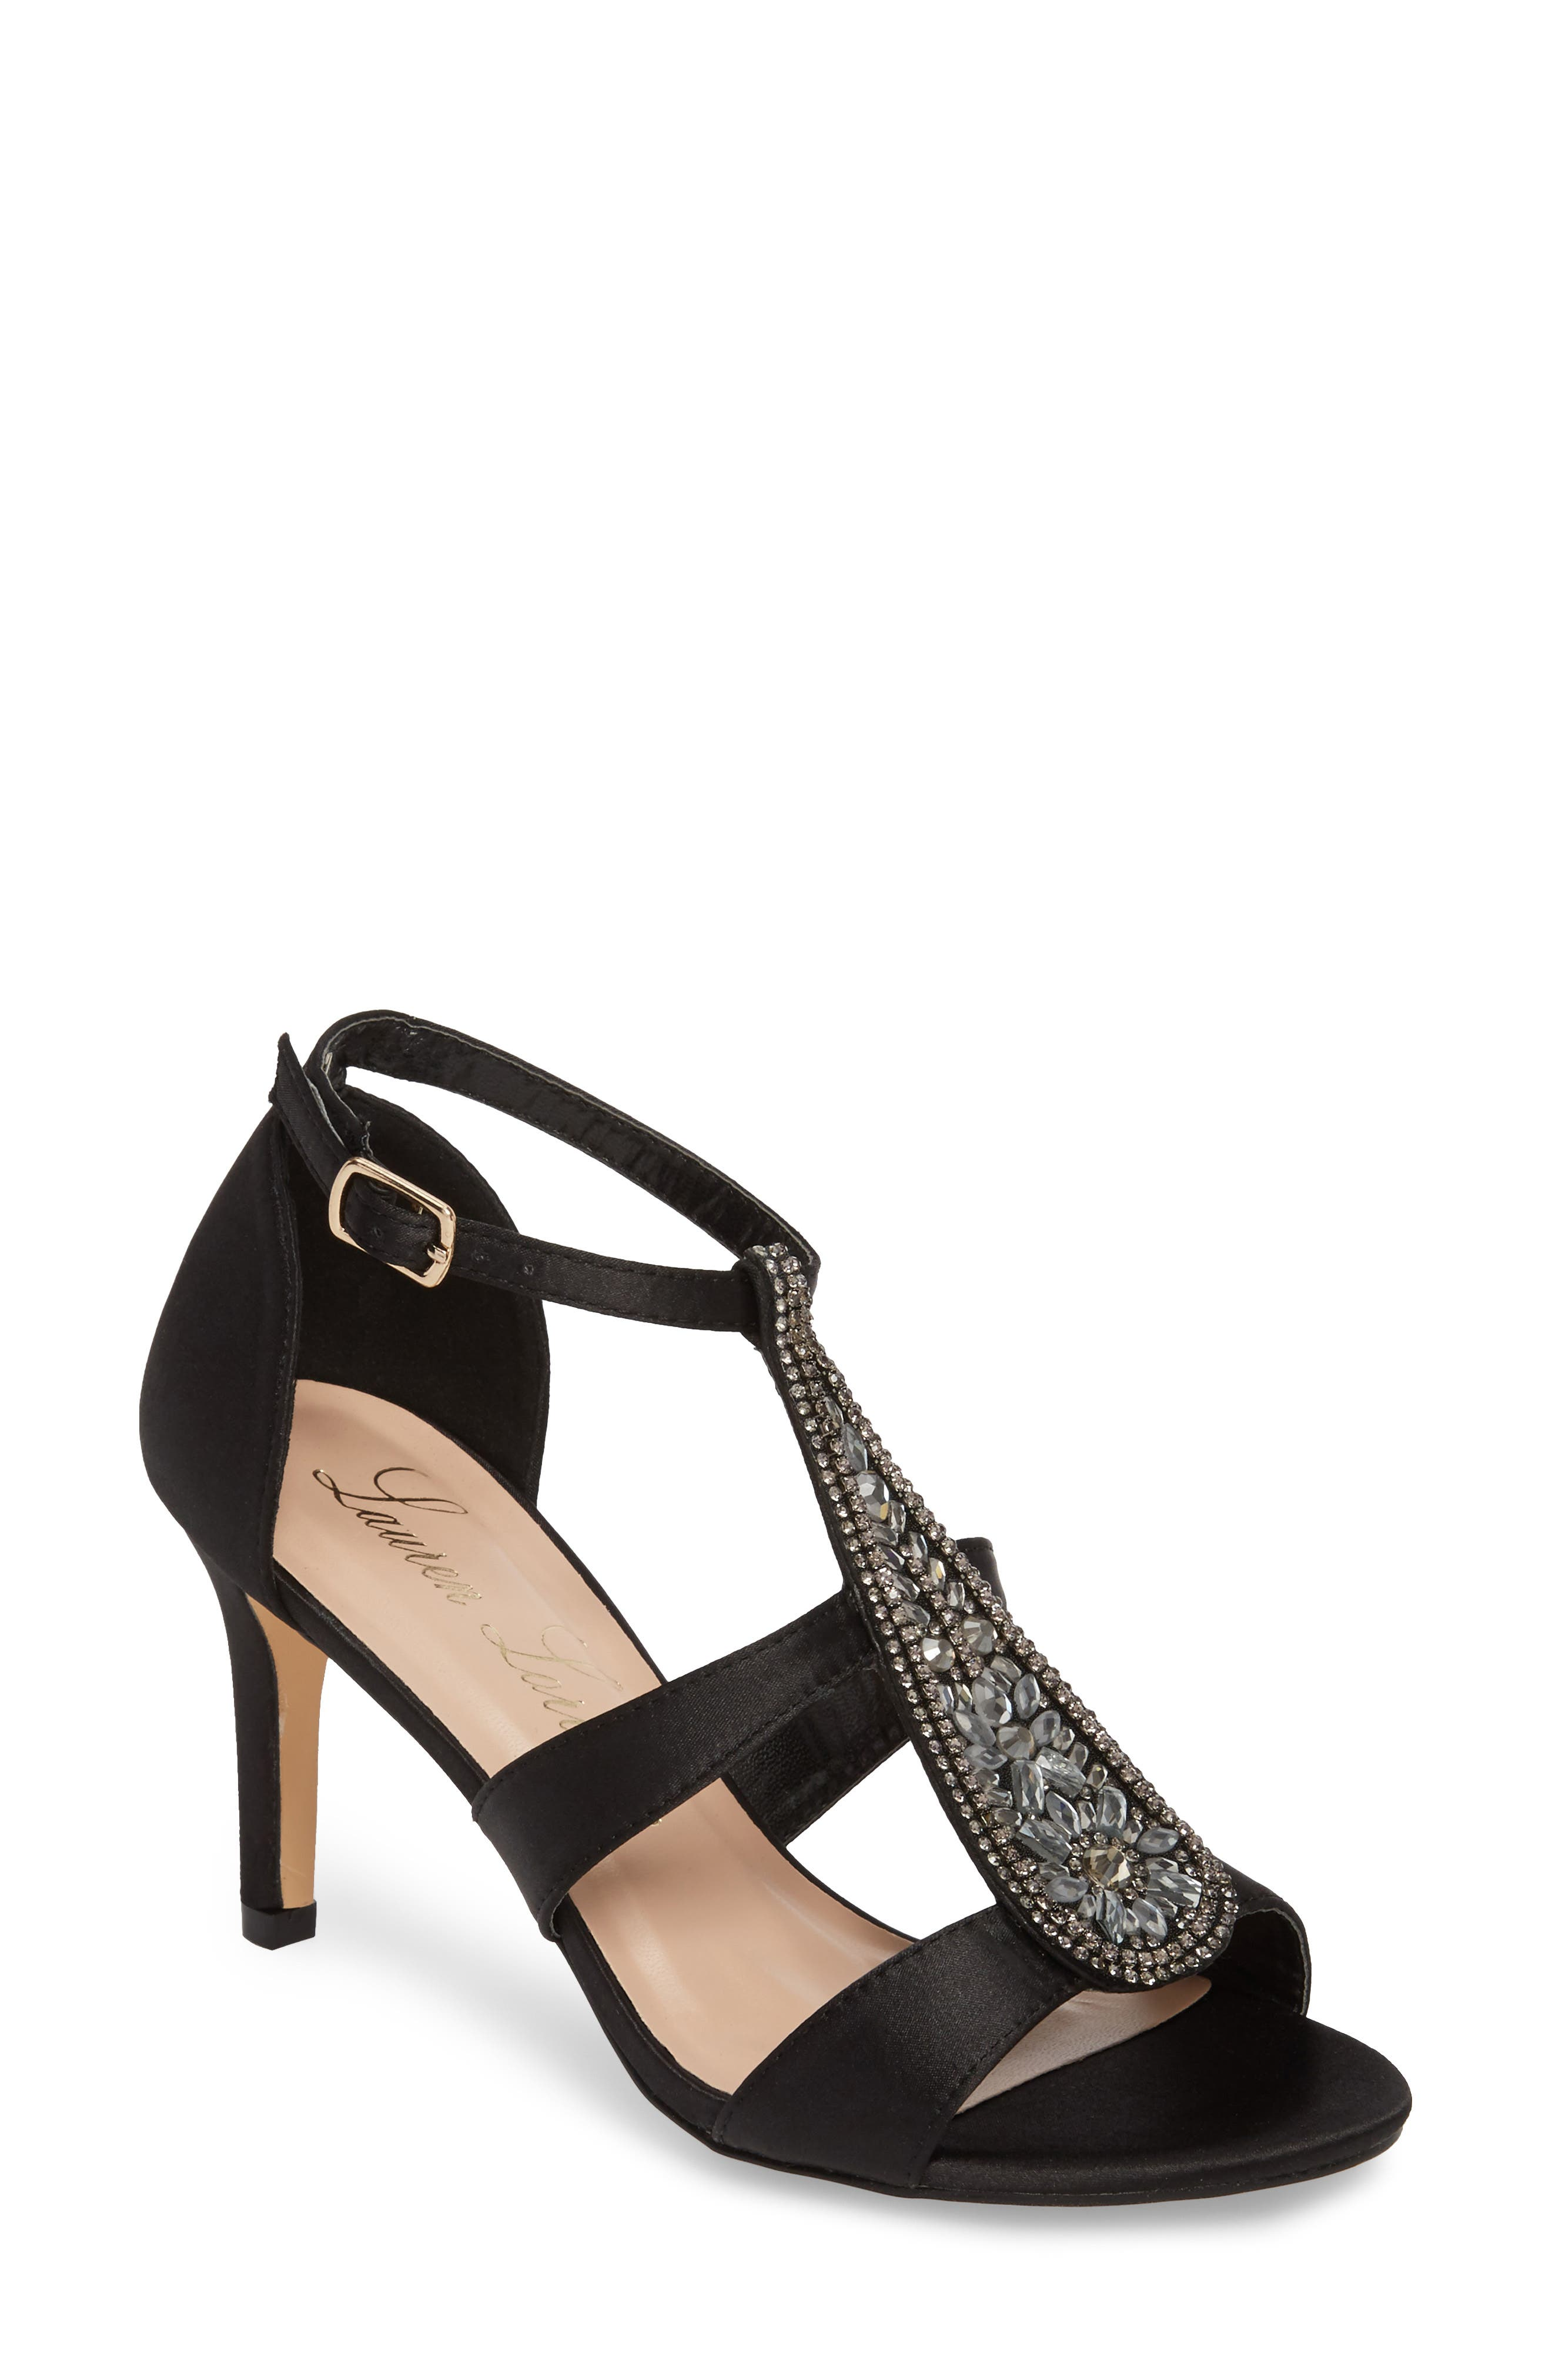 Ritz Crystal Embellished Sandal,                             Main thumbnail 1, color,                             Black Fabric